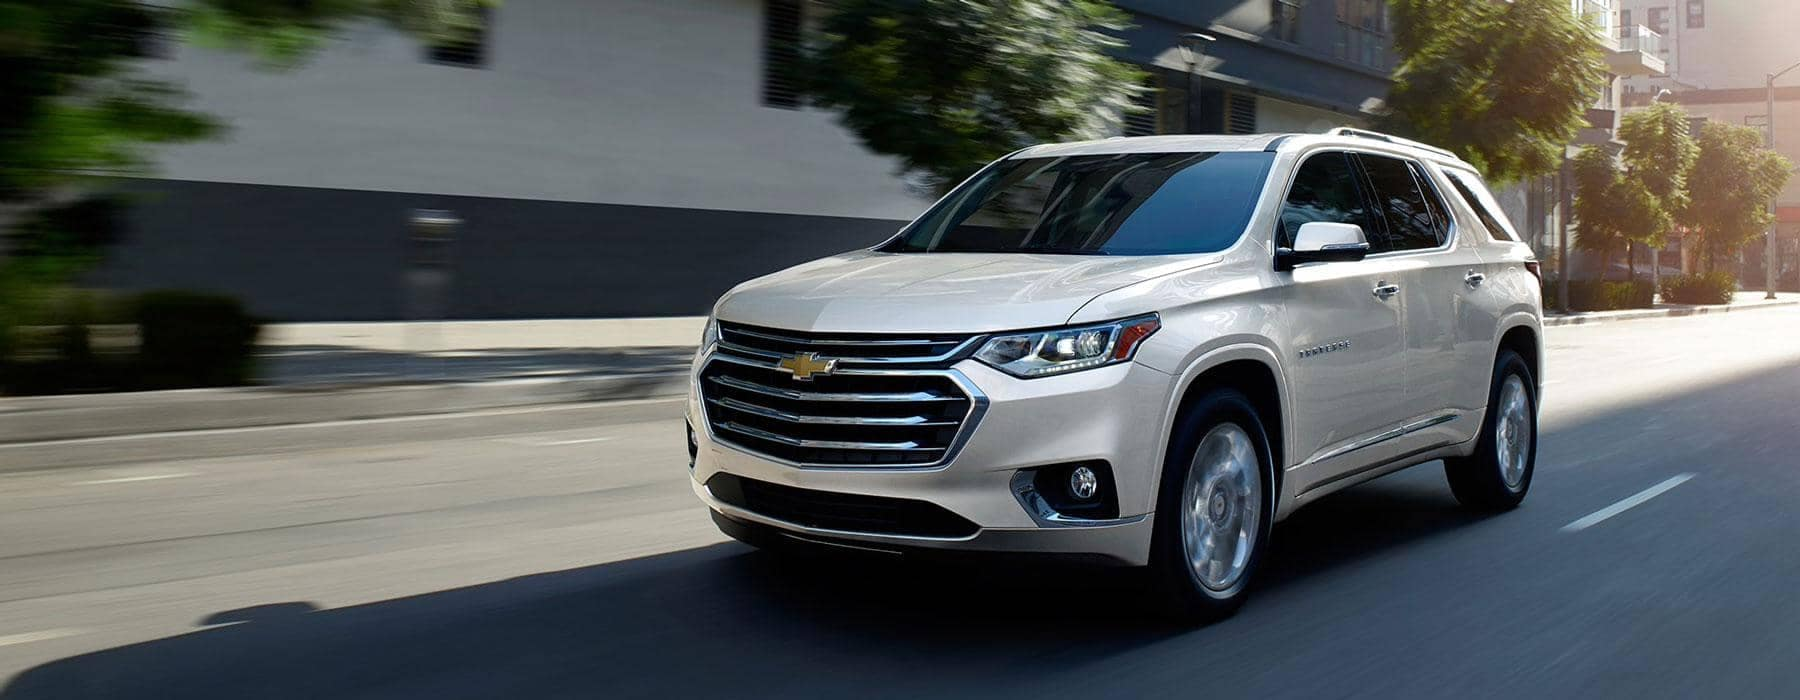 chevrolet driving on the road